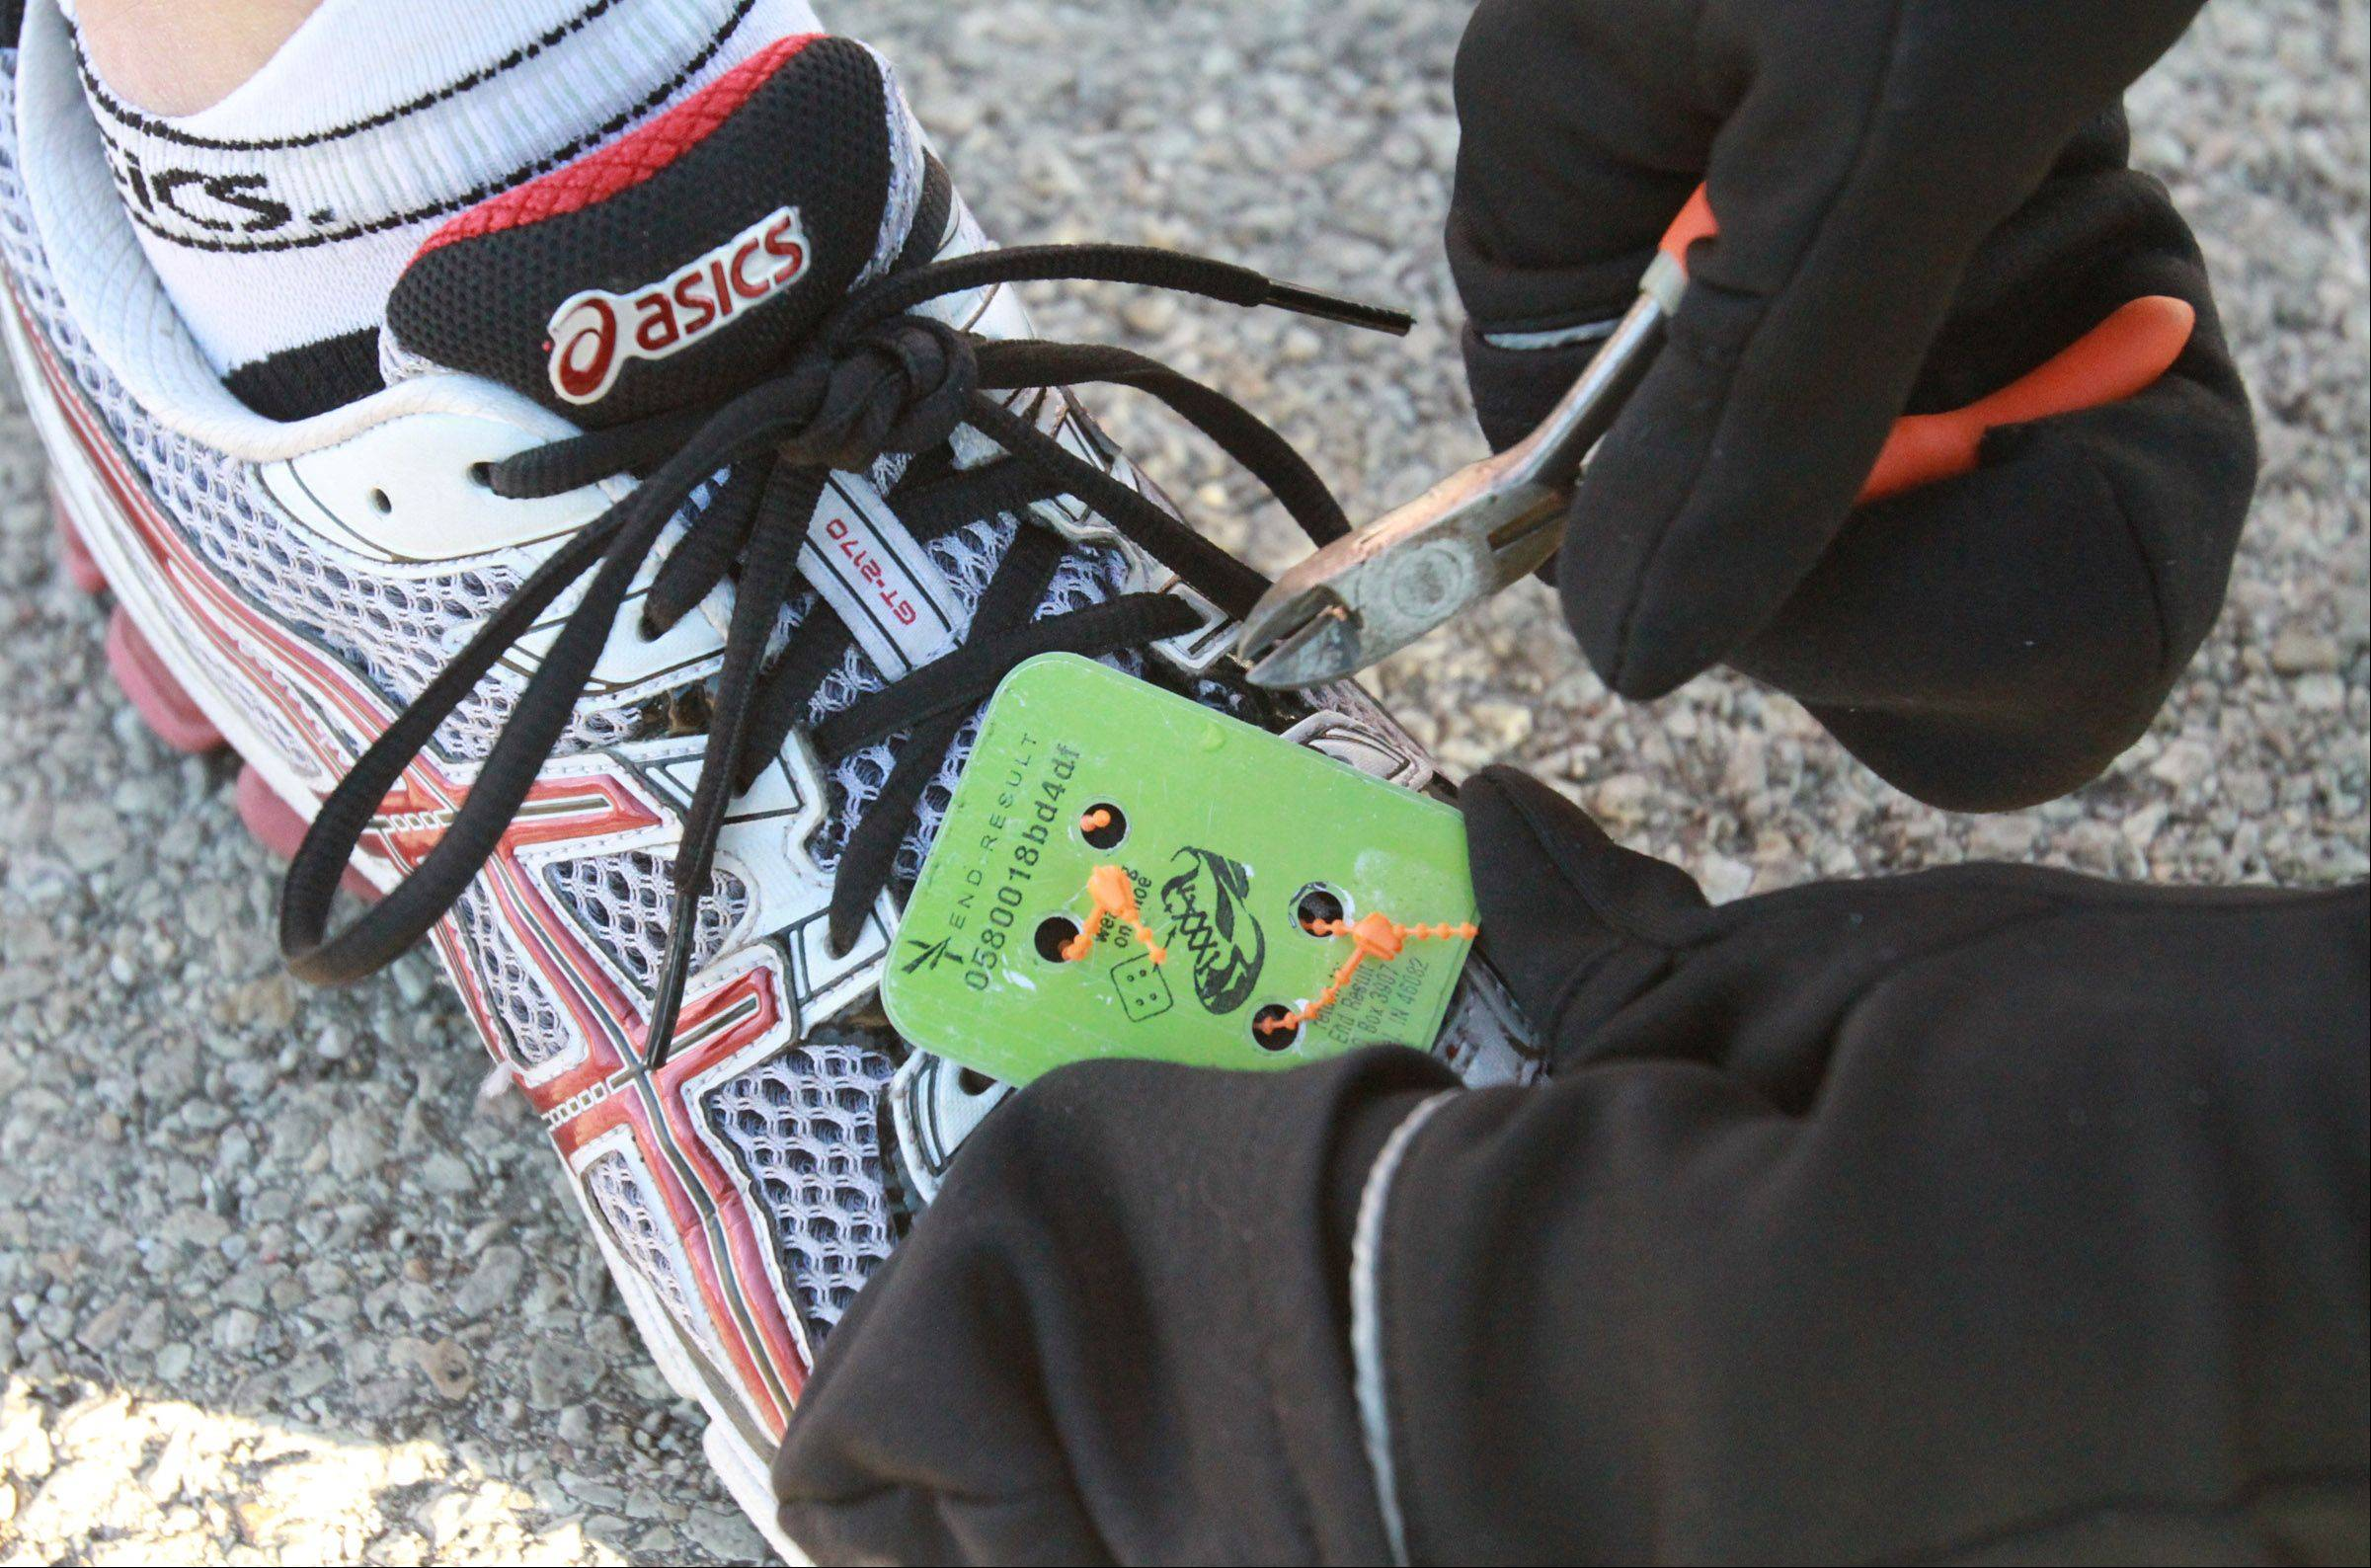 A runners tag is removed after completing the Edward Hospital Naperville half marathon on Sunday, November 10, 2013.